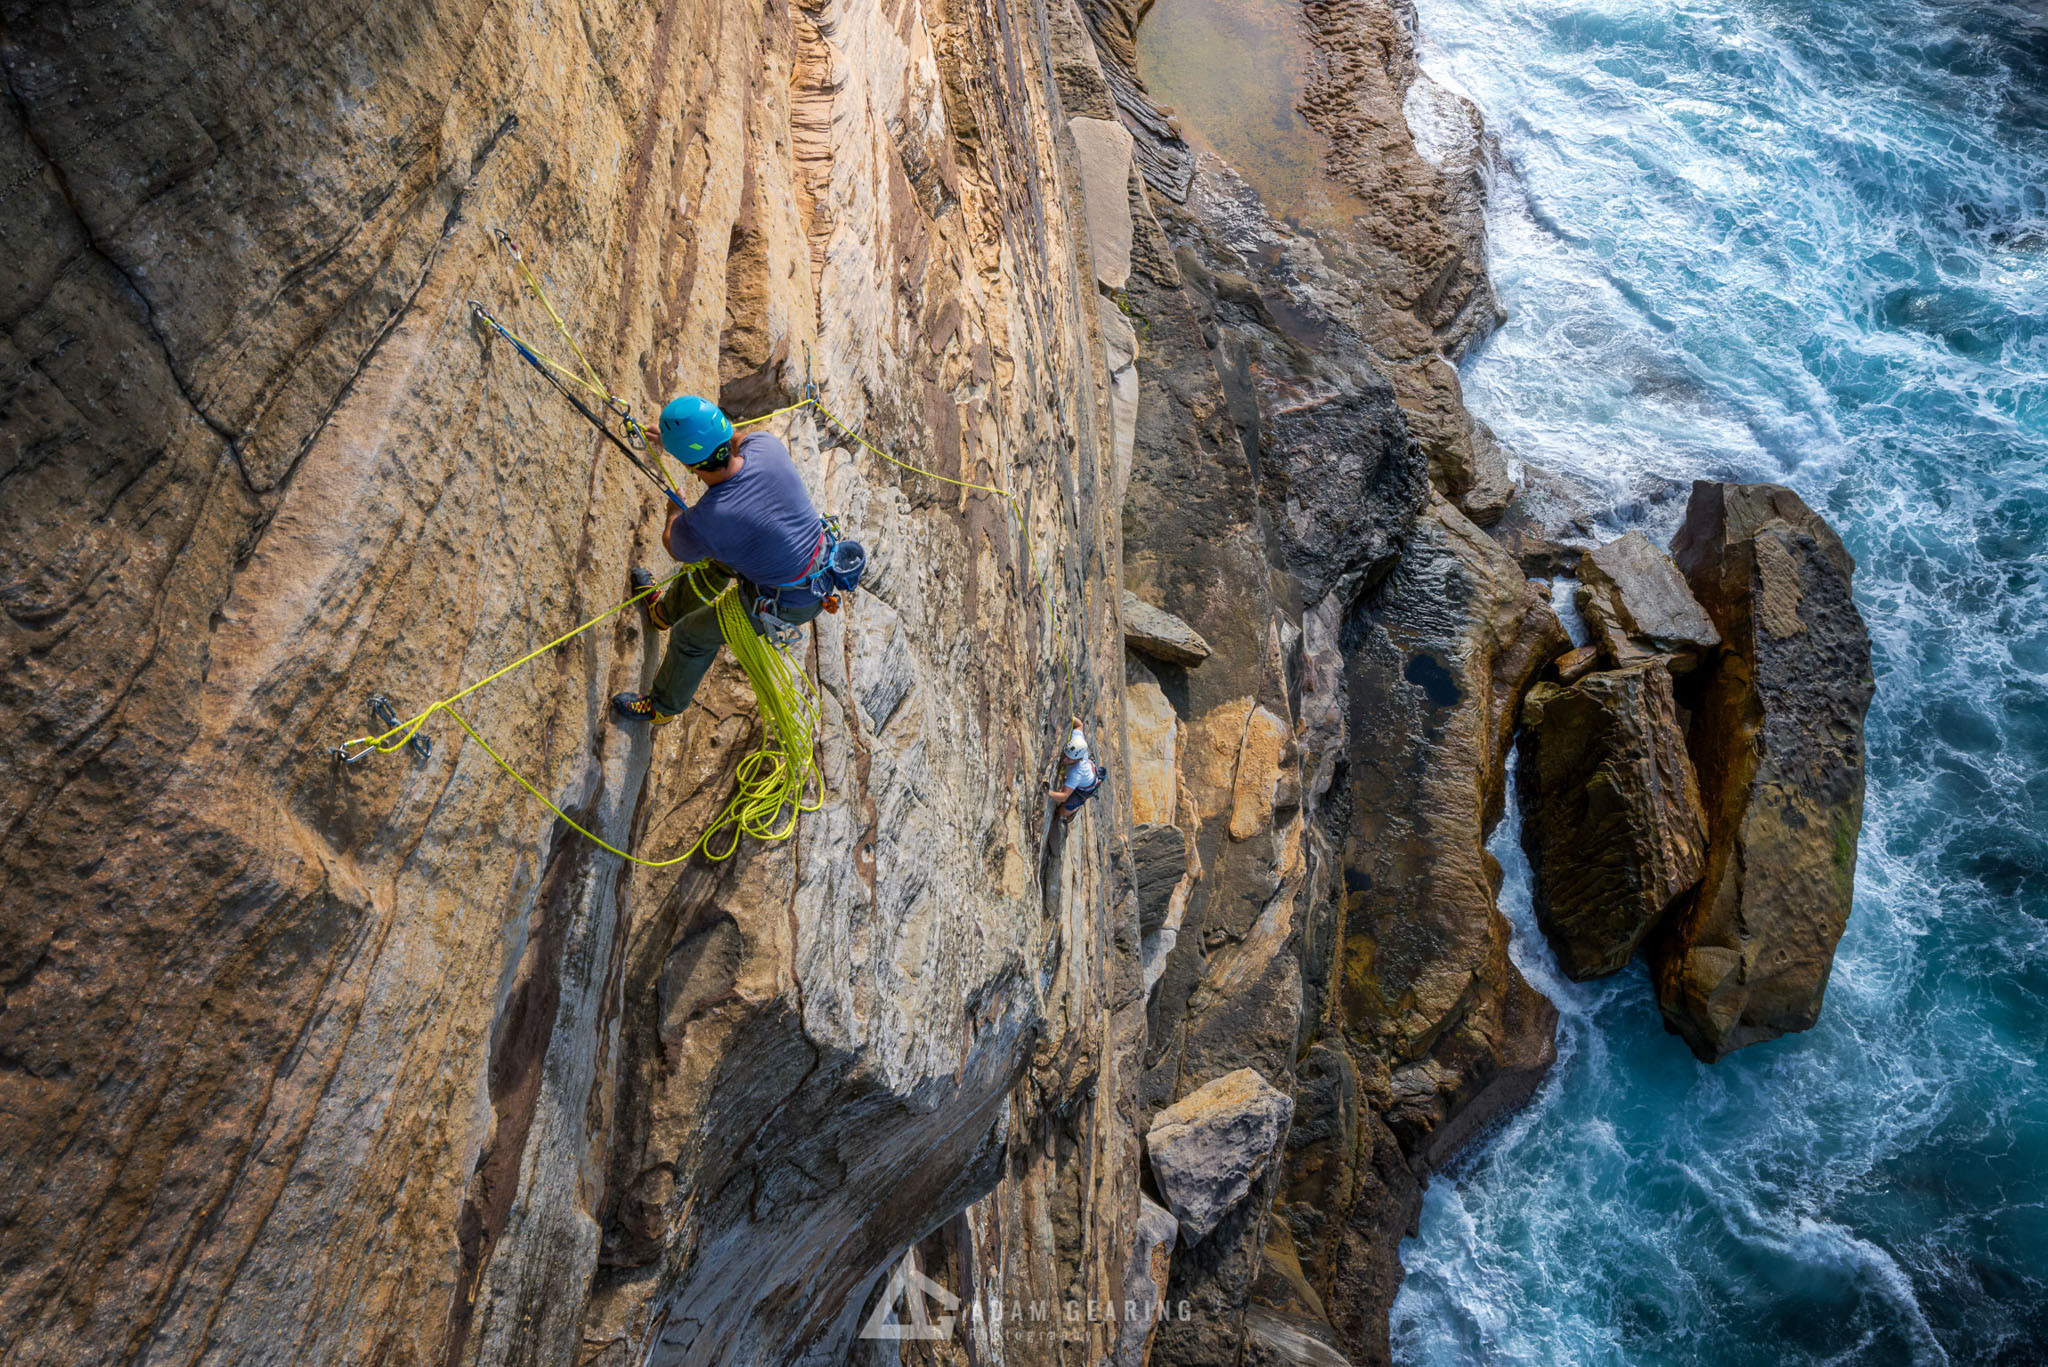 Ben Miura and Jeremy Levett on Pitch 1 of Last Wave (22), Vaucluse NSW